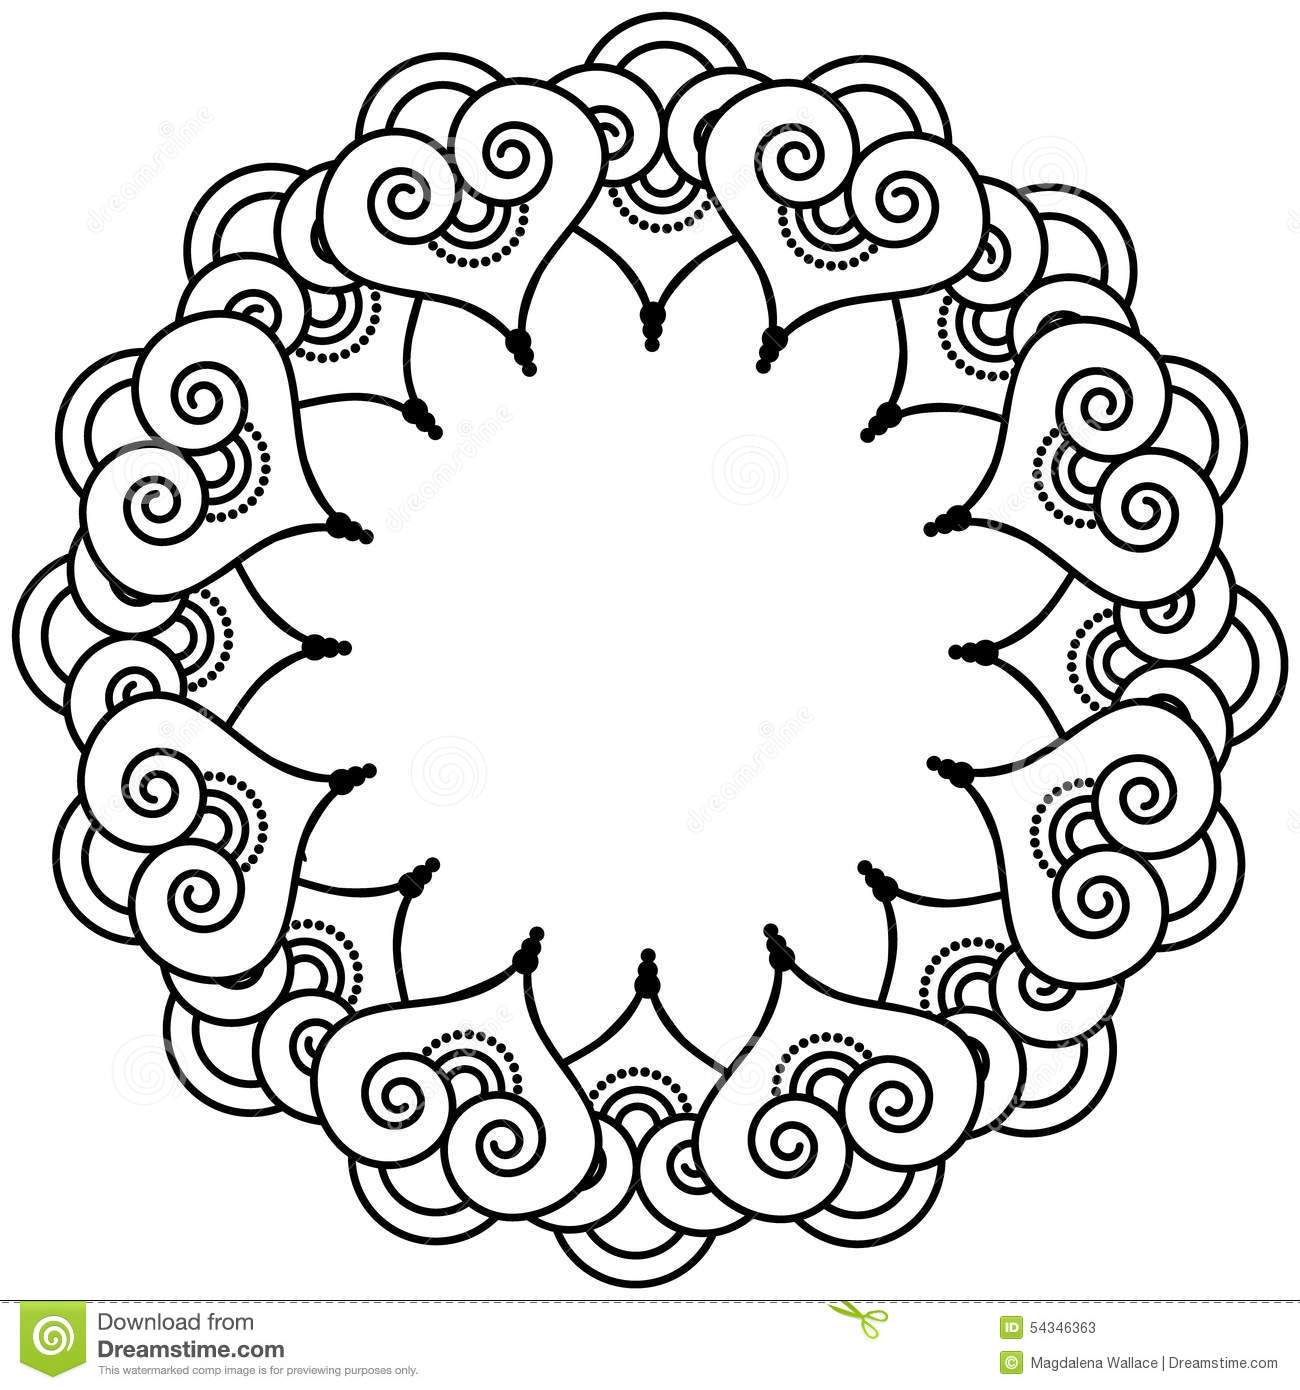 indian henna tattoo inspired heart shapes wreath with leaves element type 3 stock illustration. Black Bedroom Furniture Sets. Home Design Ideas